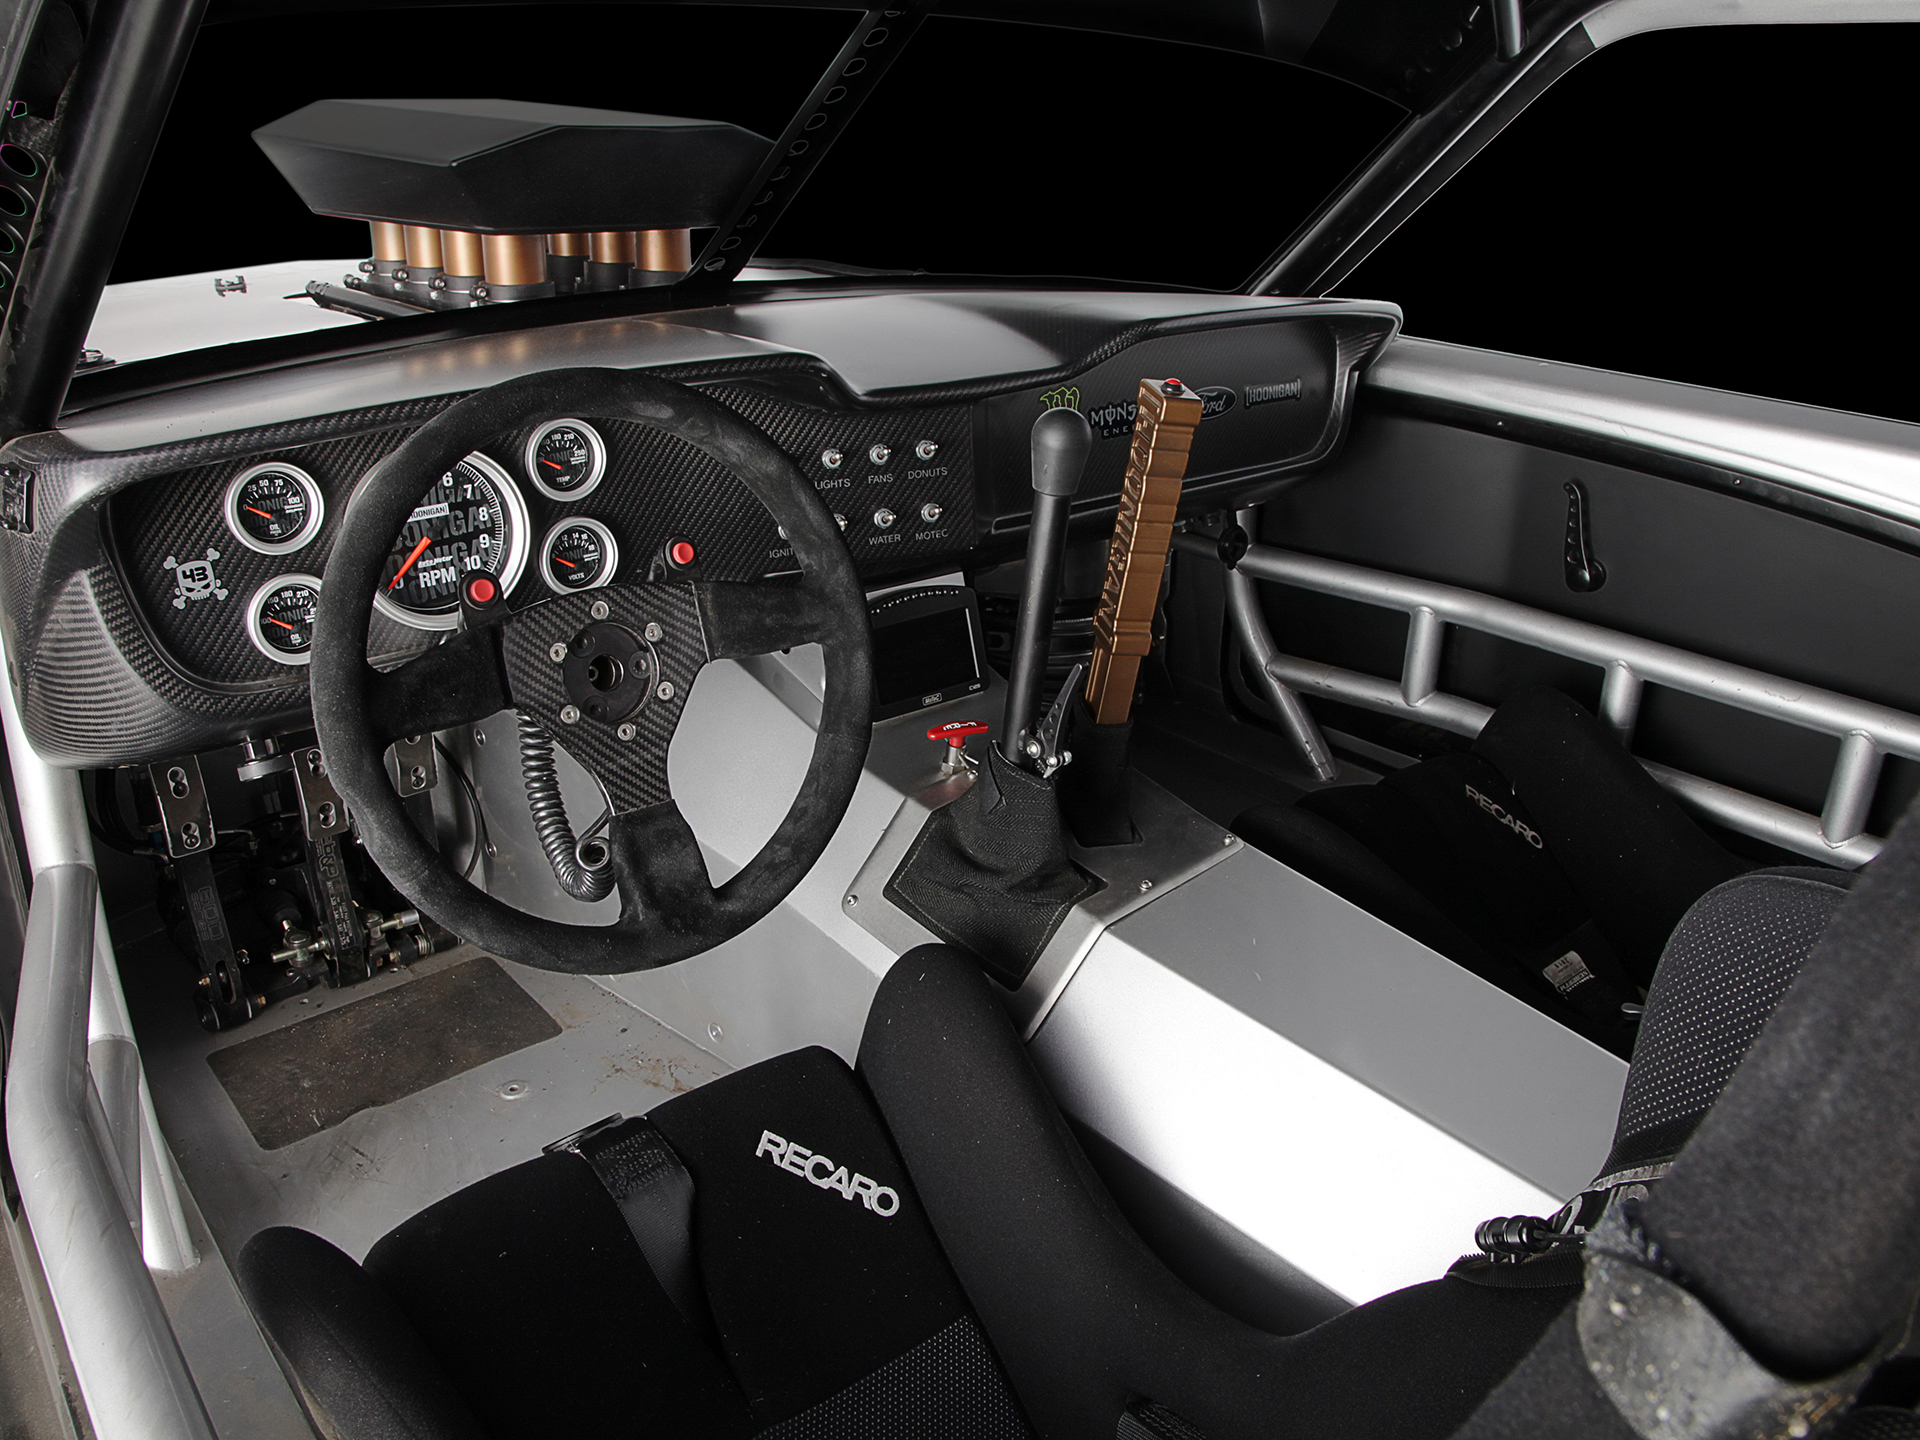 1965 mustang hoonicorn for ken block build in 2015 at asd for Interieur tuning auto